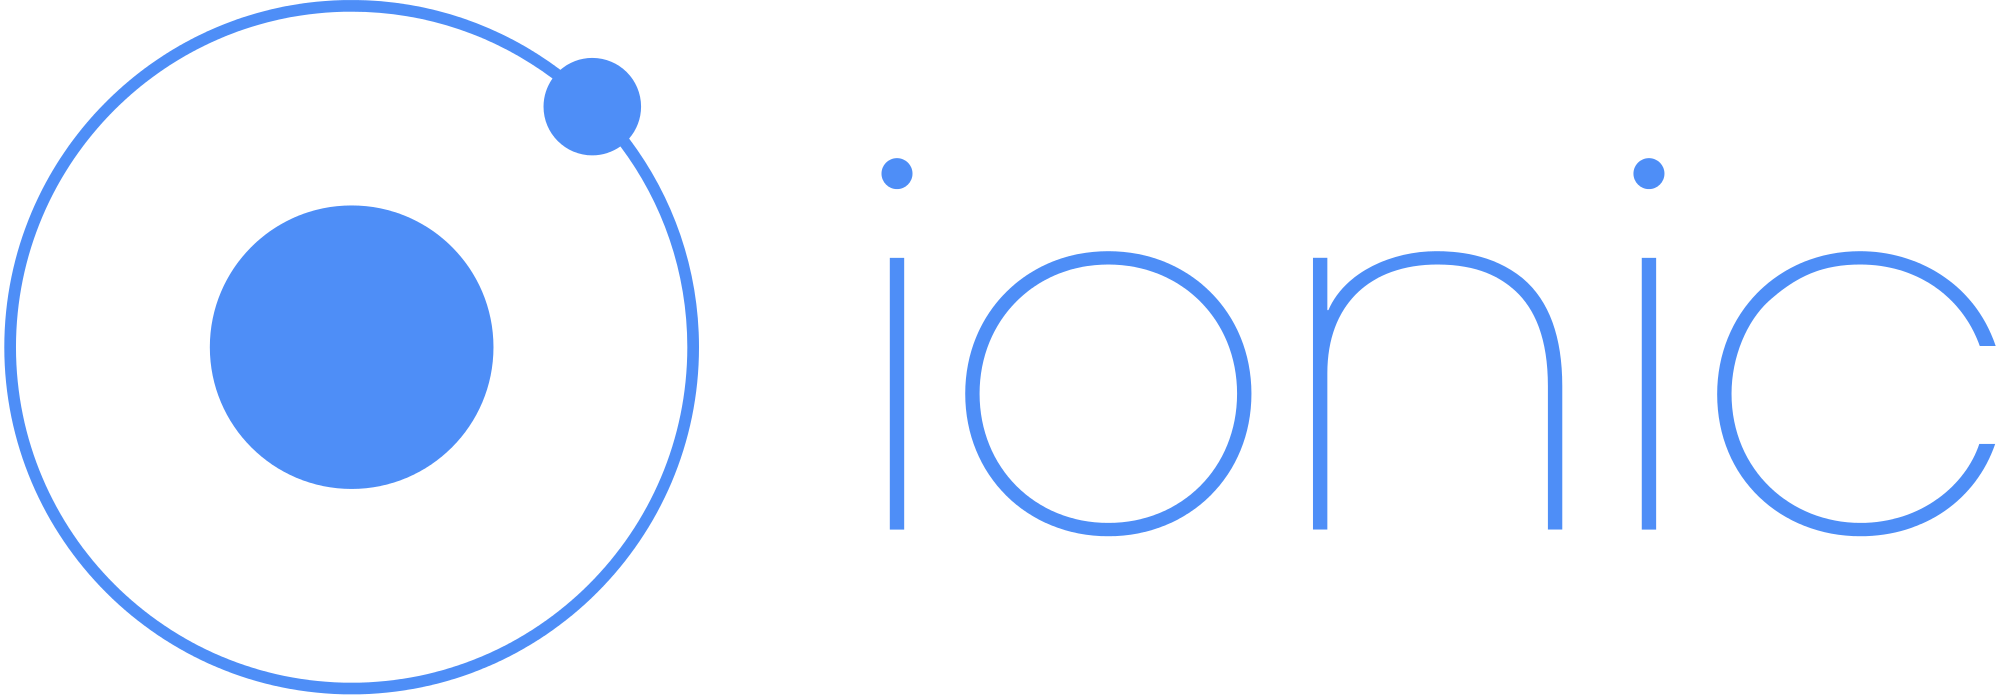 Getting Started with Ionic